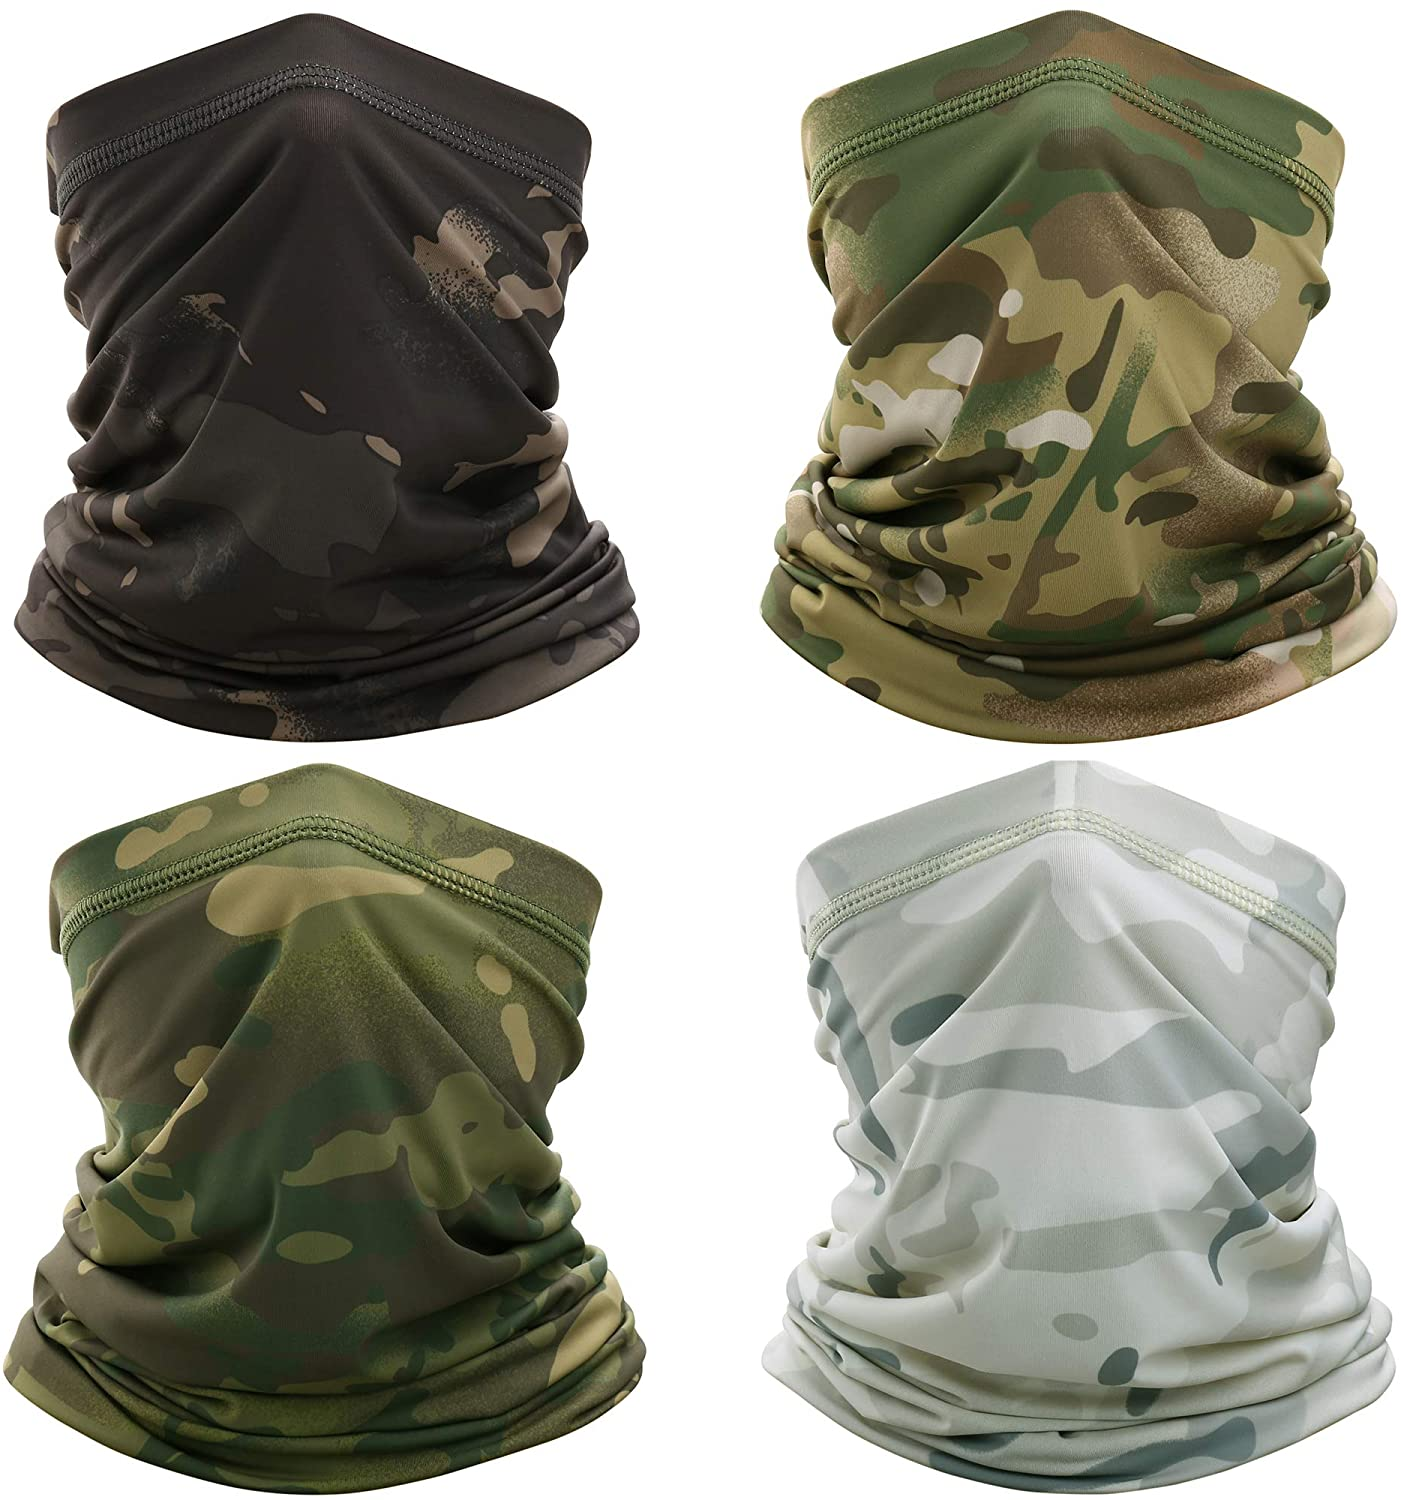 WTACTFUL UPF 50, Lightweight Cool Neck Gaiter Face Mask Protection Dust, Sun, Windproof for Outdoor